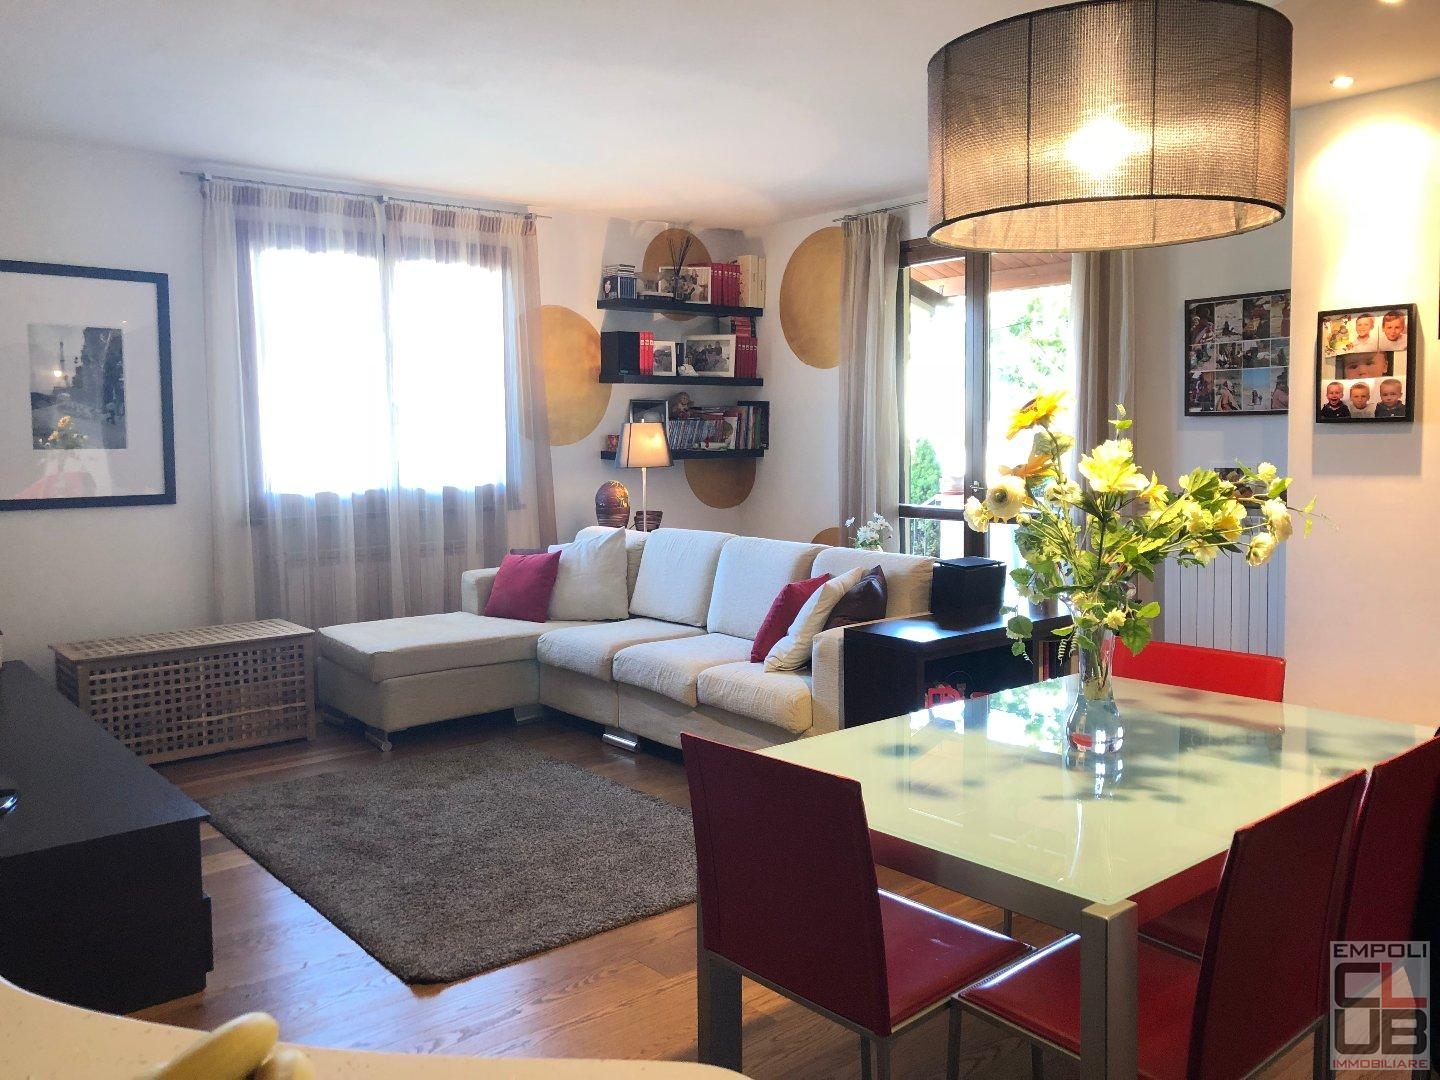 Apartment in Empoli